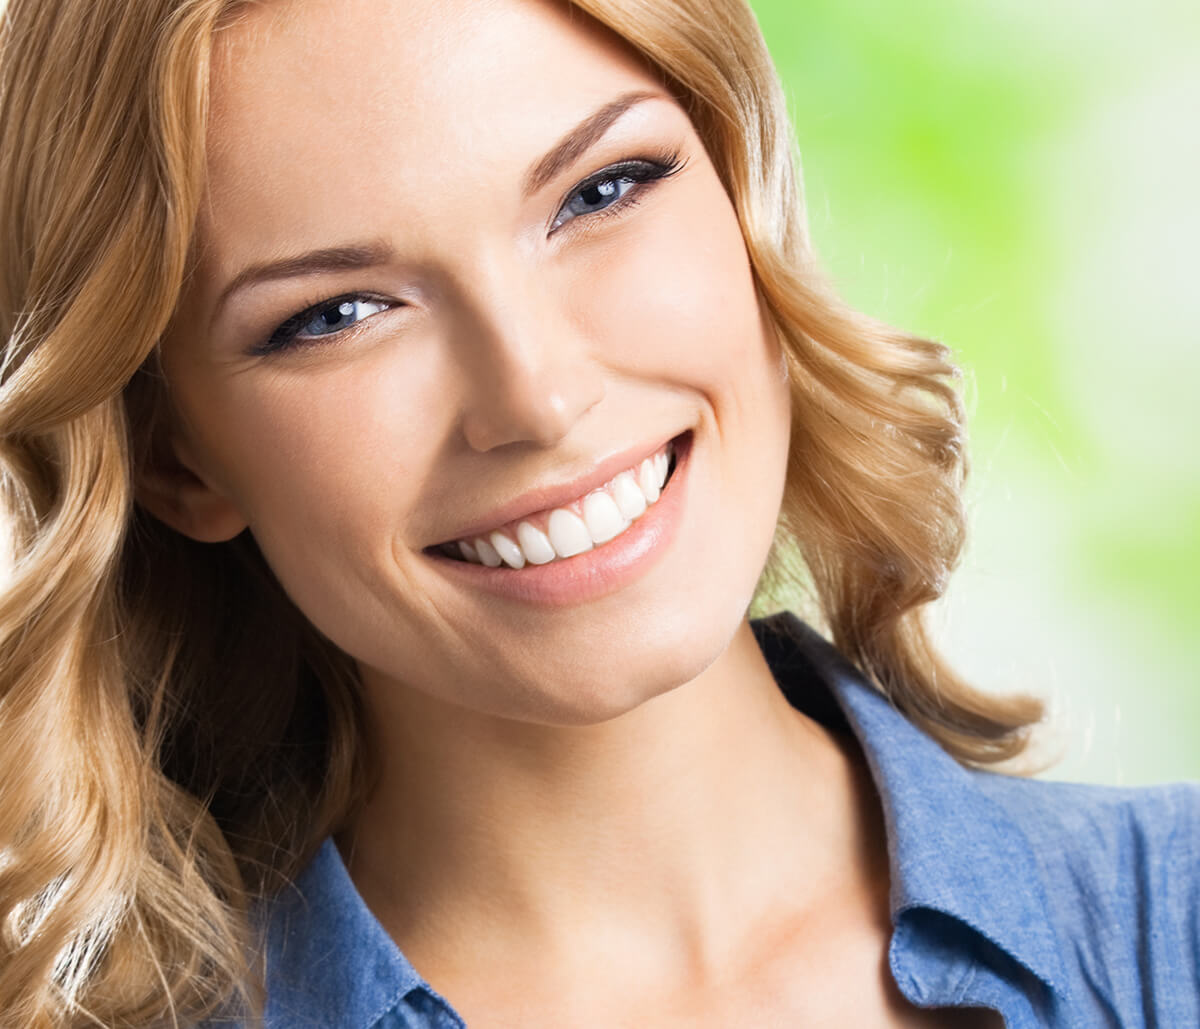 Ozone Therapy for Teeth at Alpha Plus Dental Center in Brookline MA Area